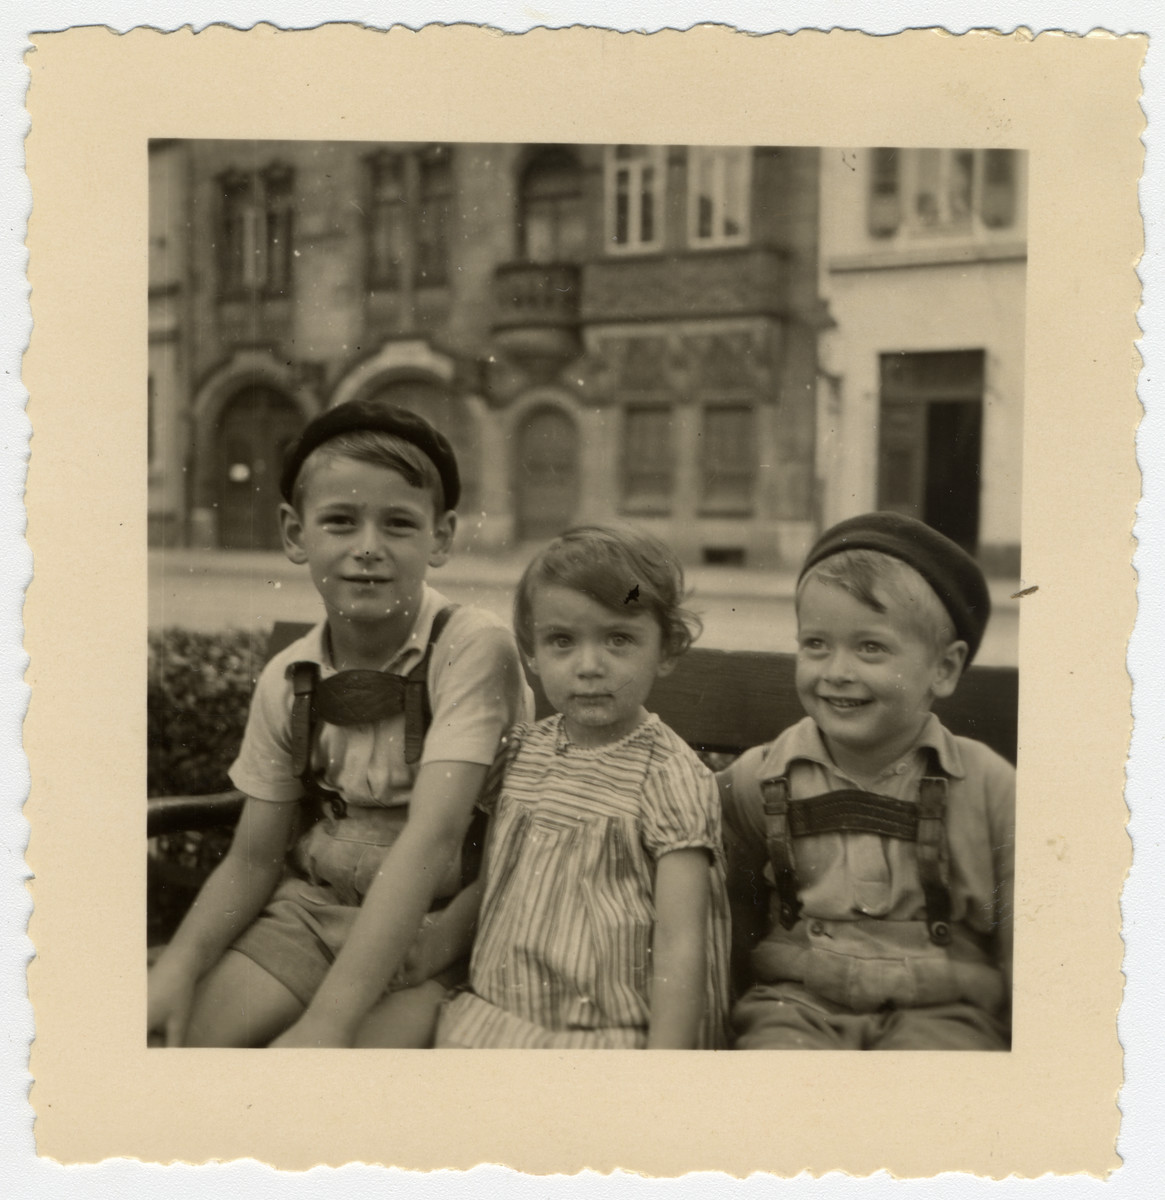 Close-up portrait of three German-Jewish children in Mannheim Germany.  Pictured are Max, Josef and Ruth, the children of  Manfred and Recha Kalberman. Manfred was born on March 31, 1900 and eventually committed suicide when he thought he would never get a visa to leave Nazi Germany.